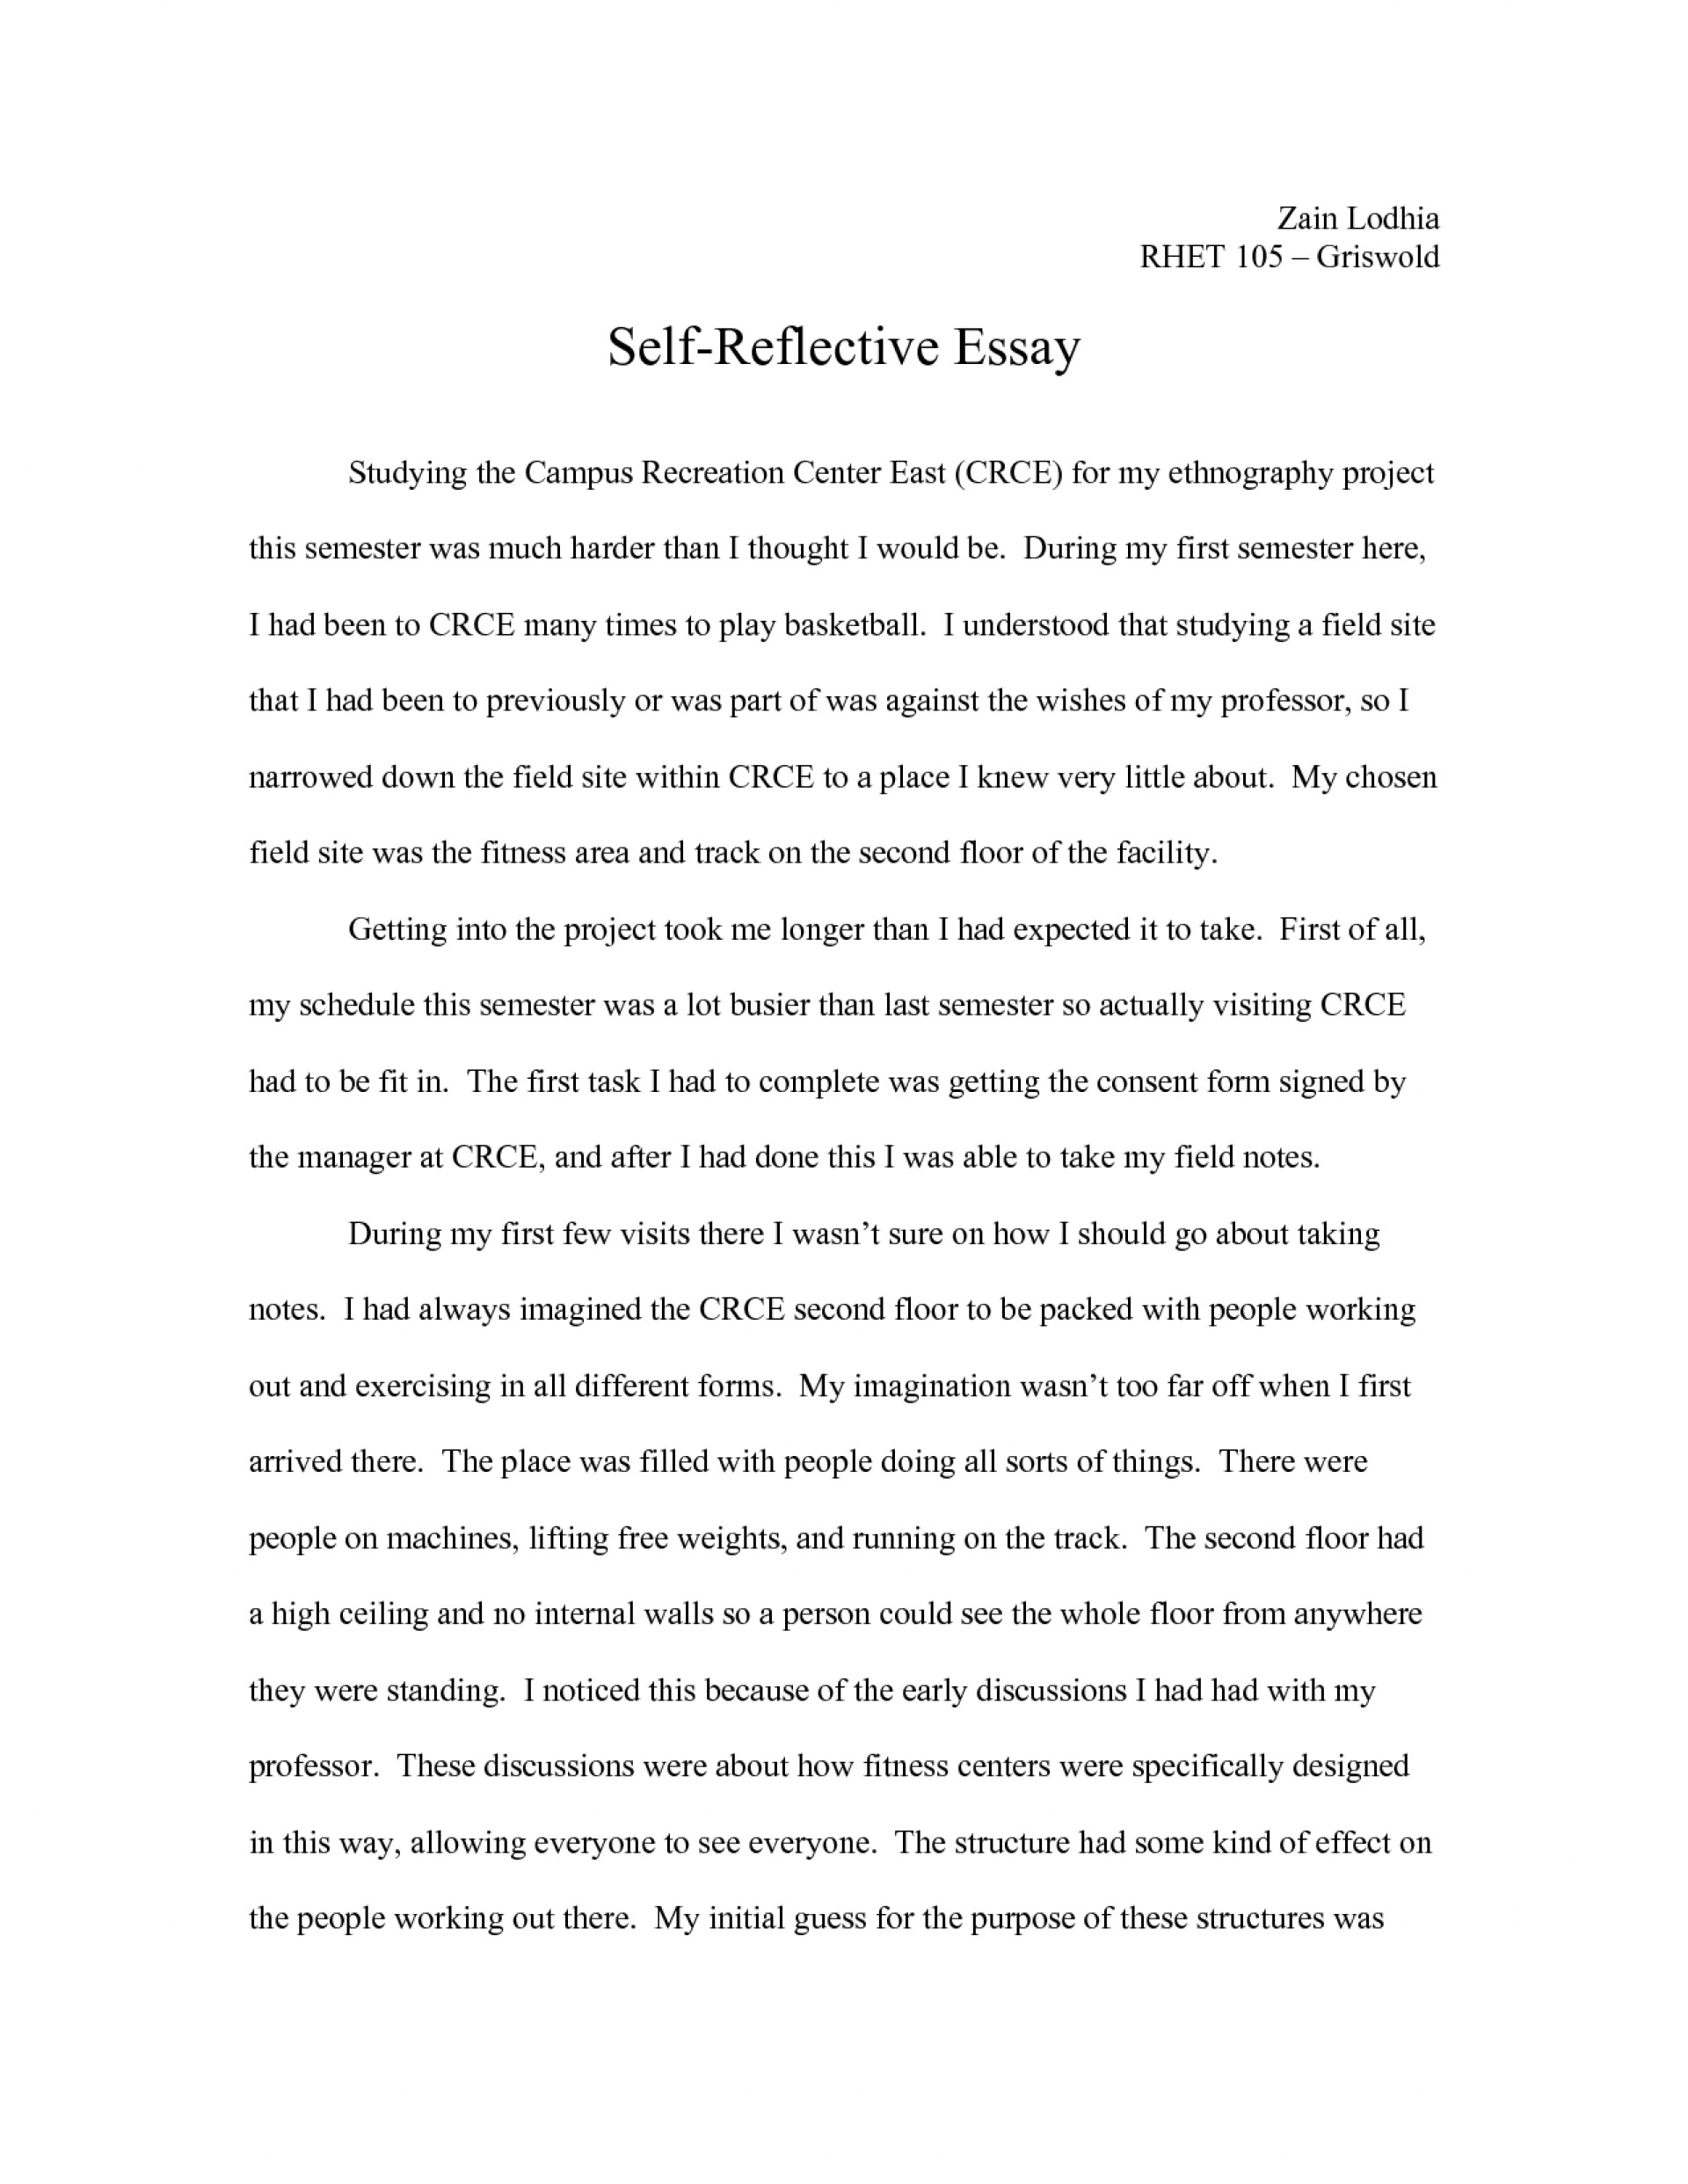 003 Qal0pwnf46 Reflective Essays Beautiful Essay Examples English Pdf For Middle School On Writing Class 1920